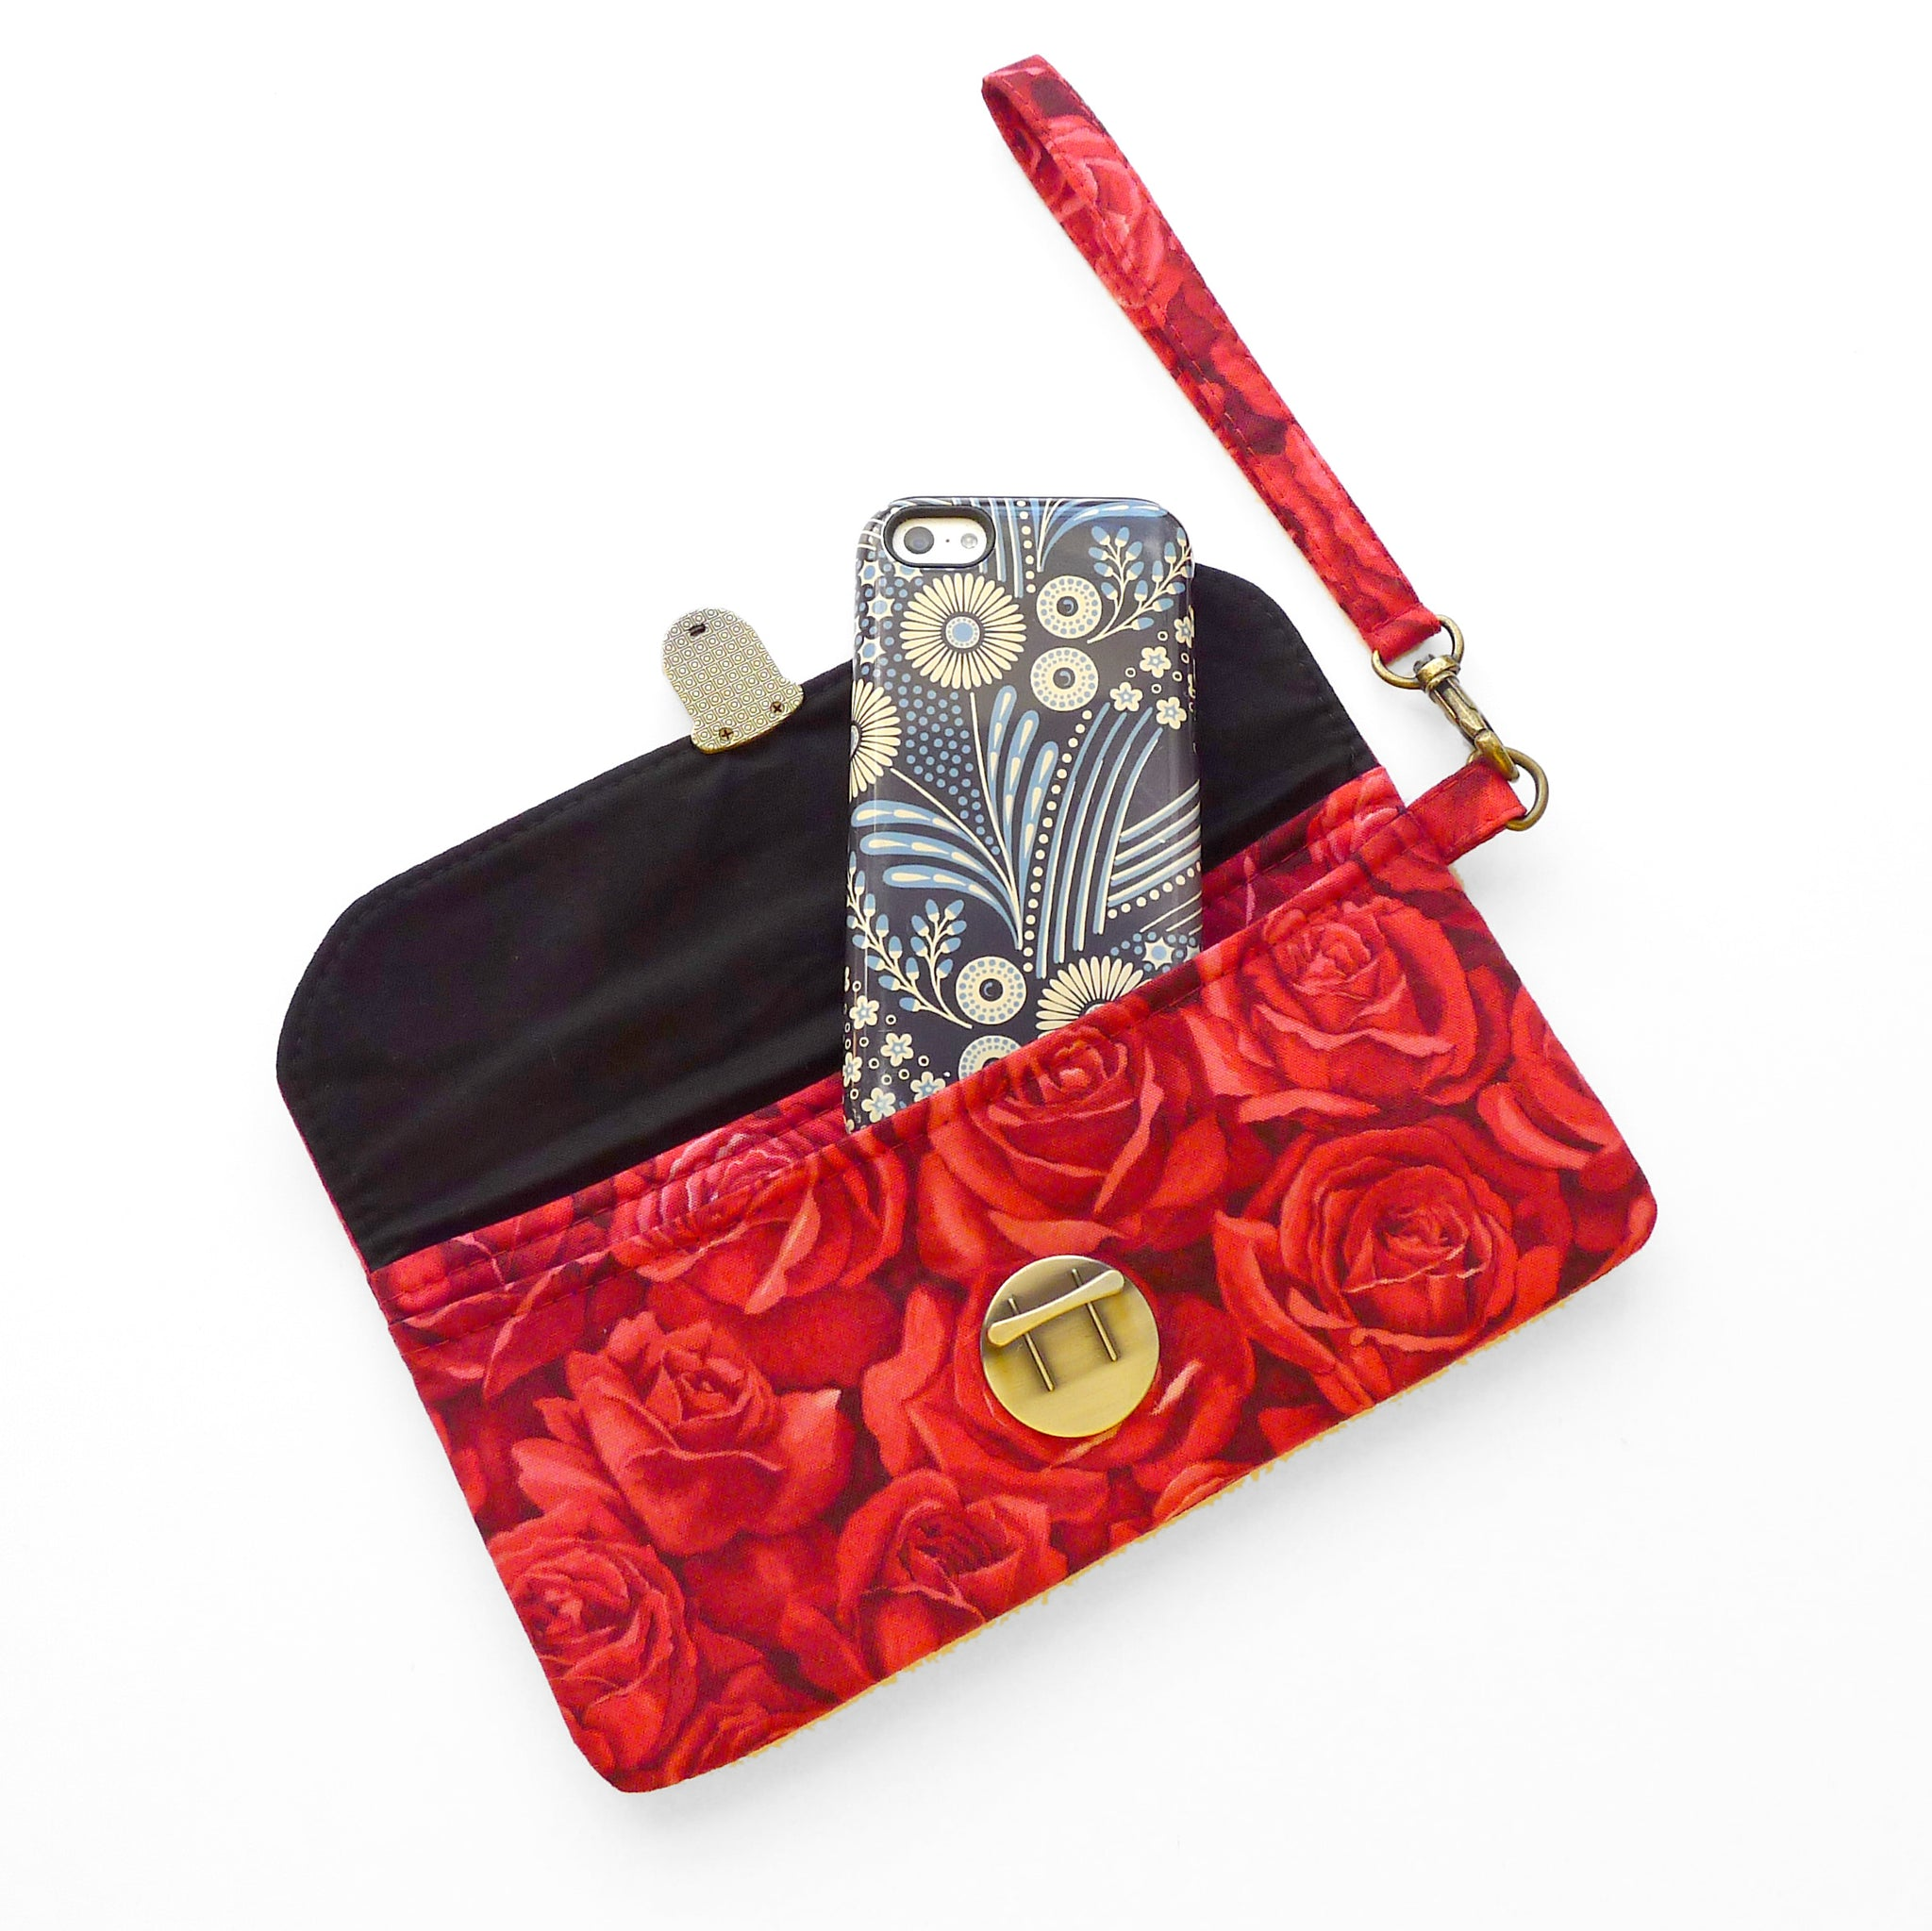 The Simply Smart Clutch Making Kit